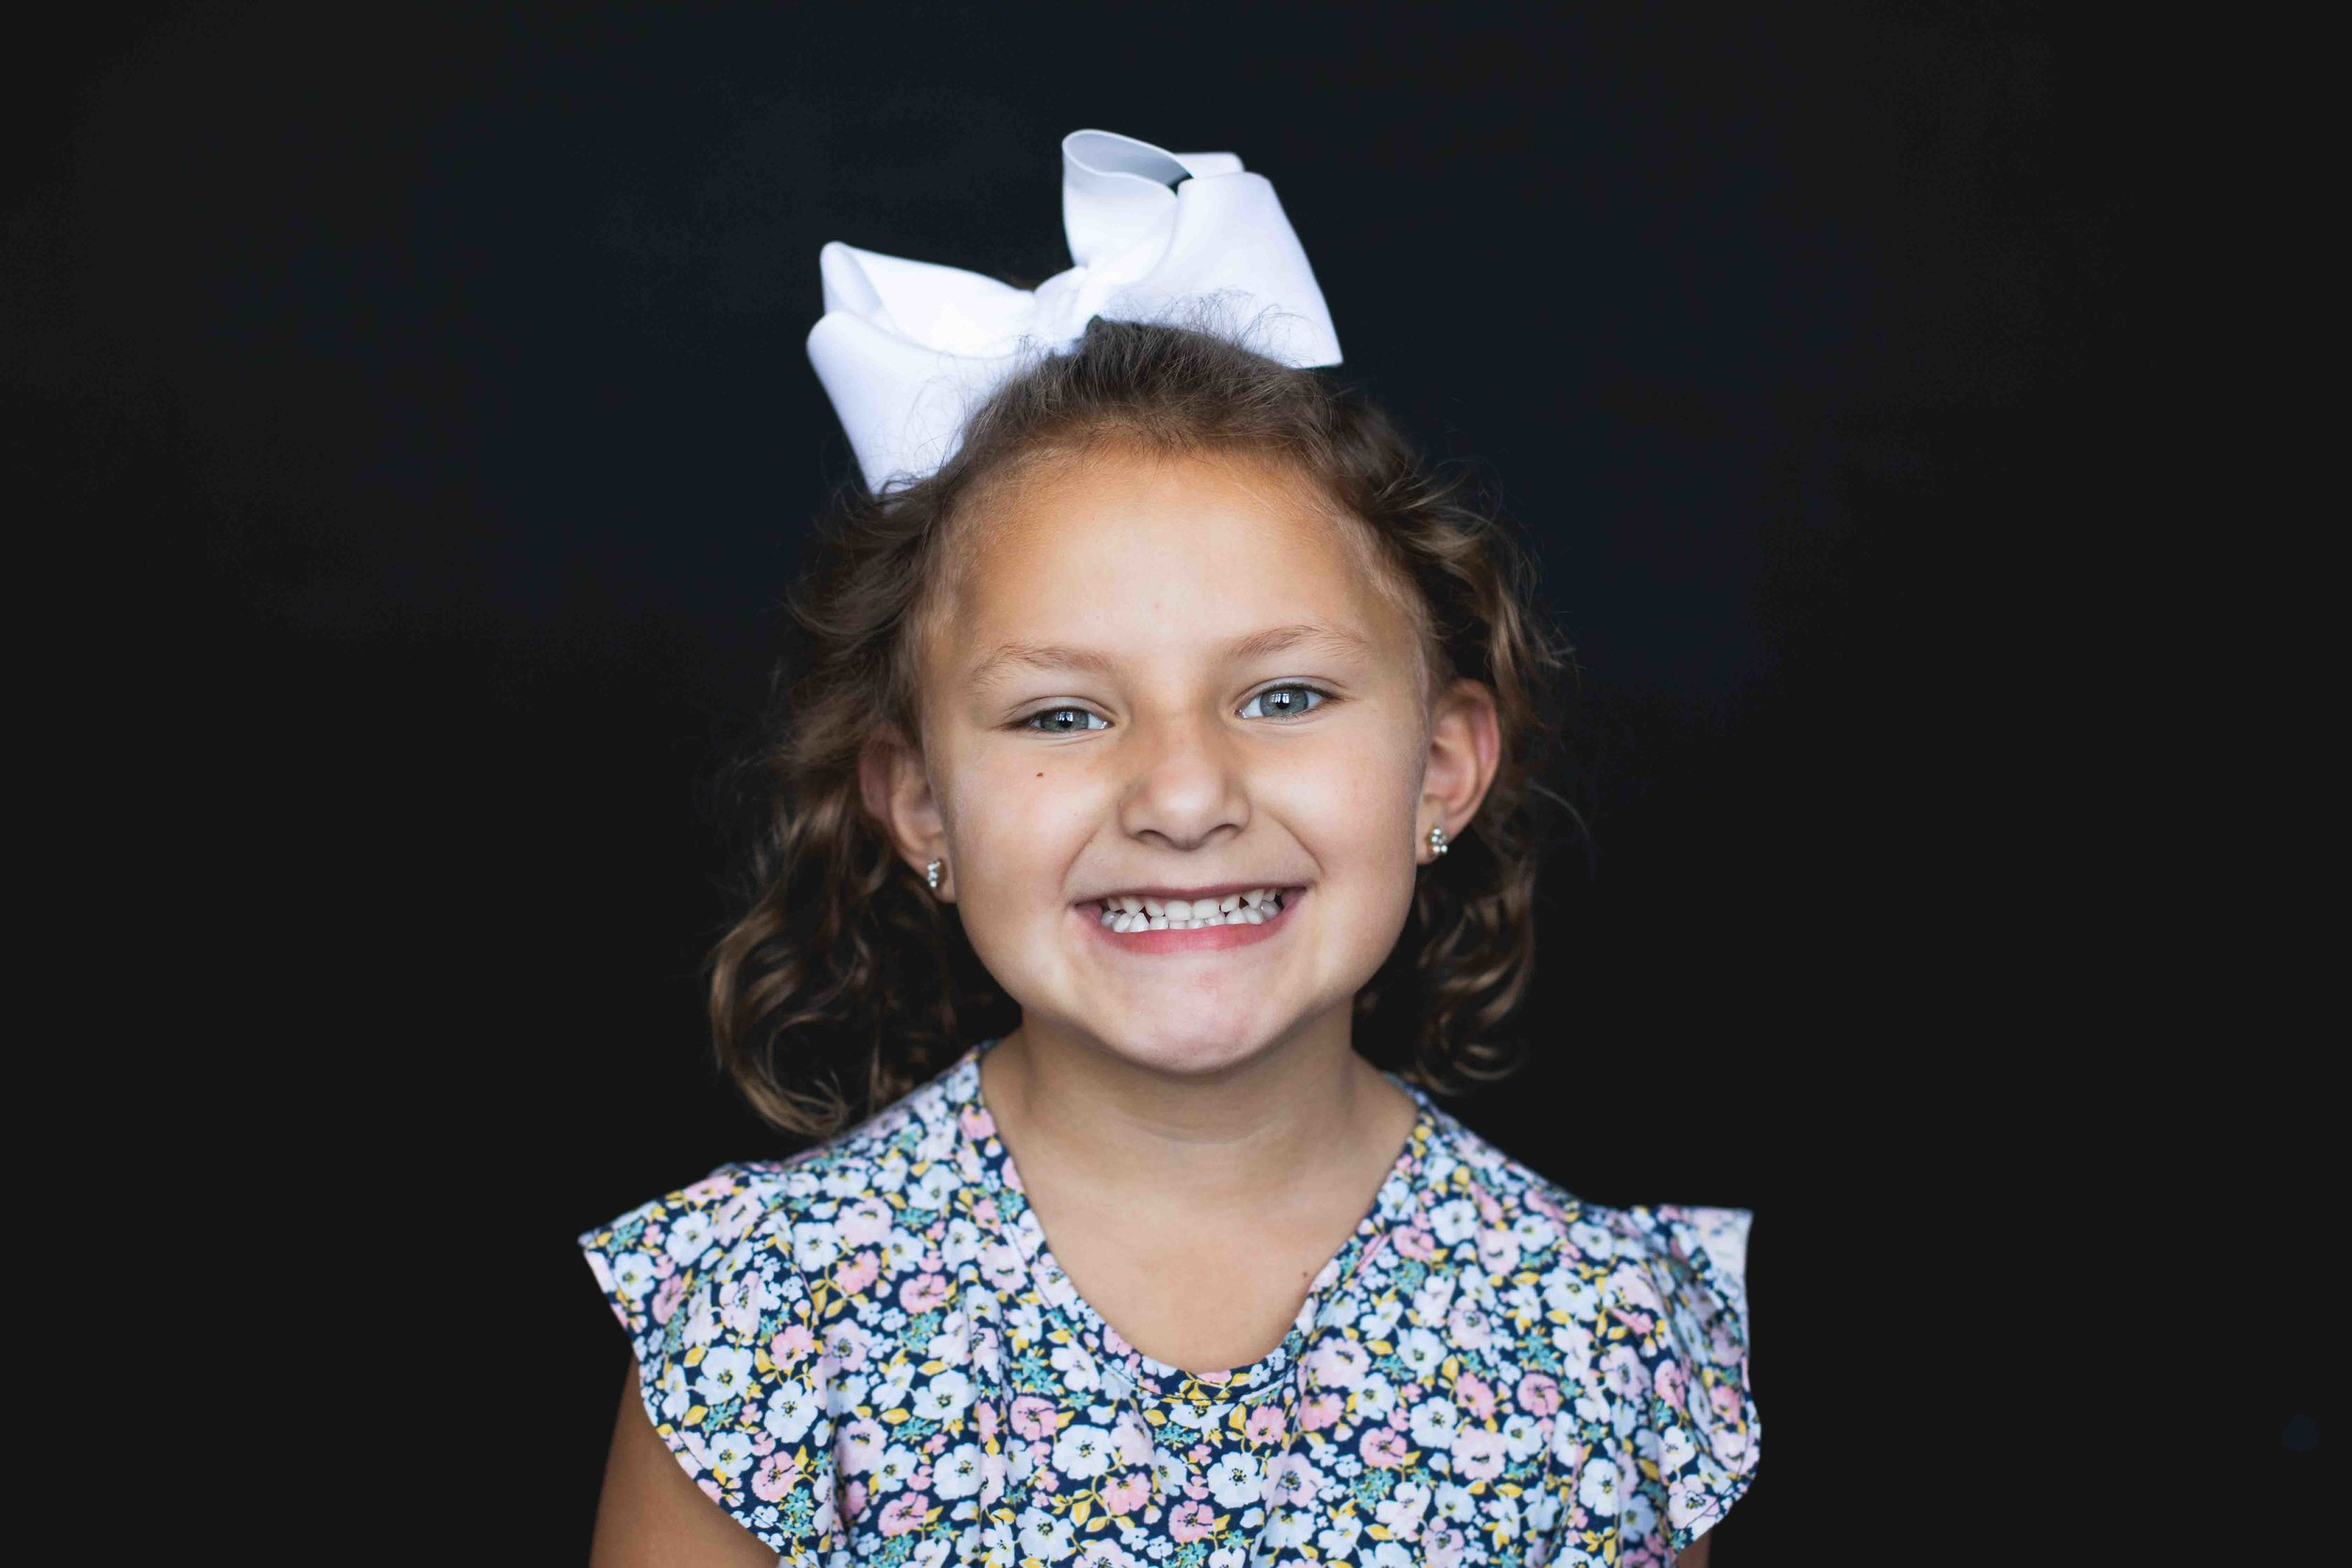 20180913_7572-- color--5day--preK--4yr----10snowflake-pittsburgh-boutique-school-photography.jpg